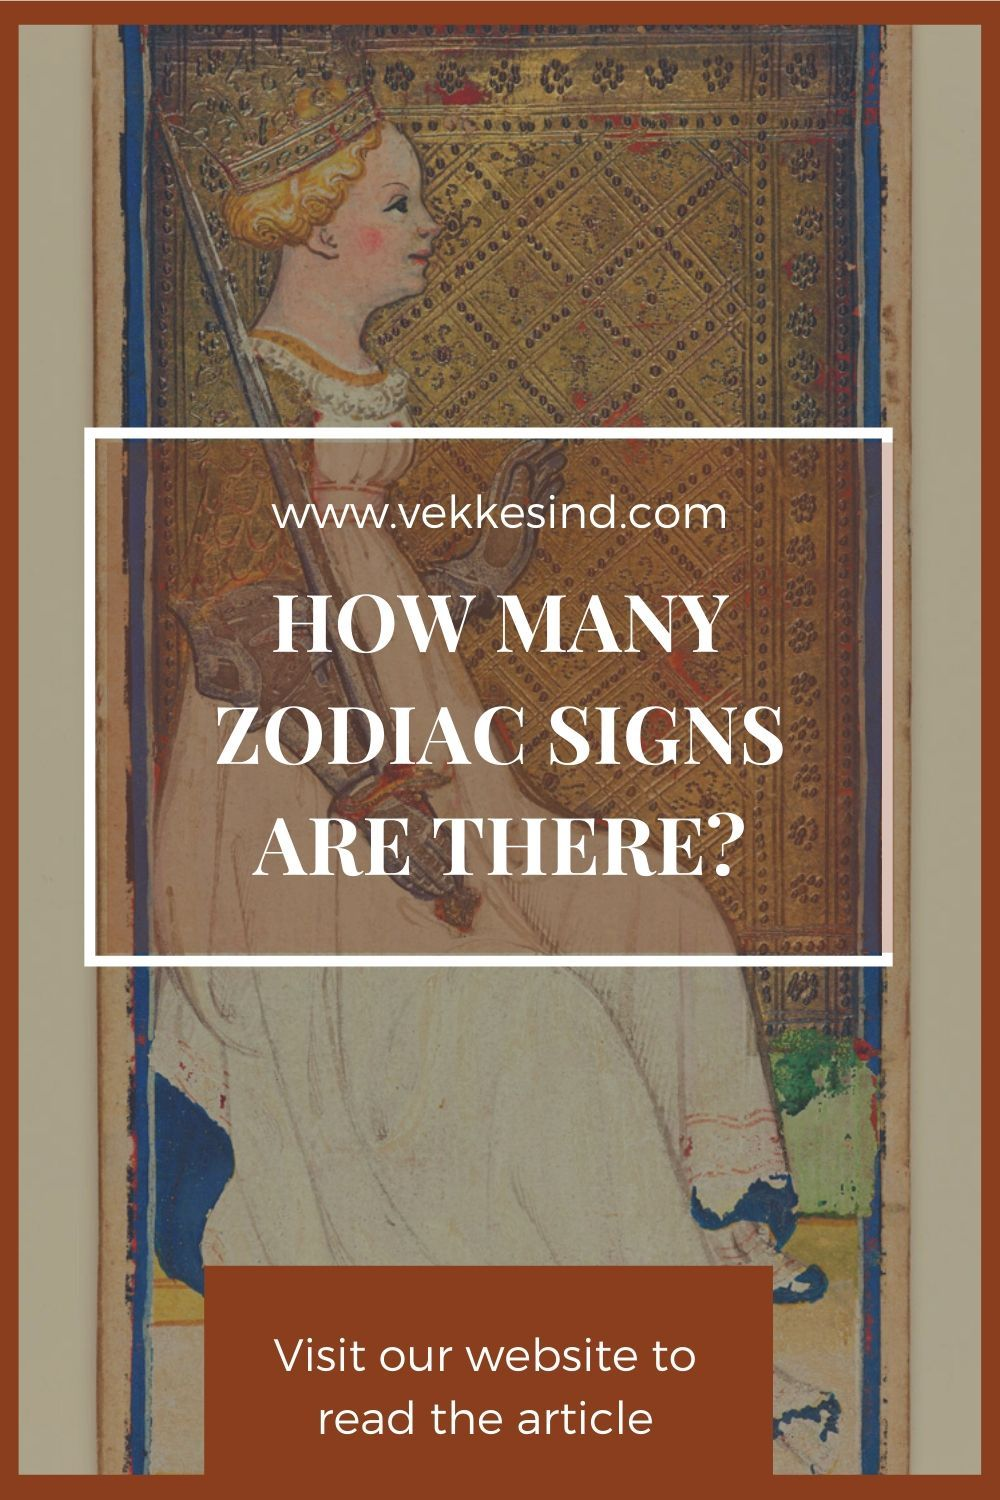 How Many Zodiac Signs Are There? | Vekke Sind